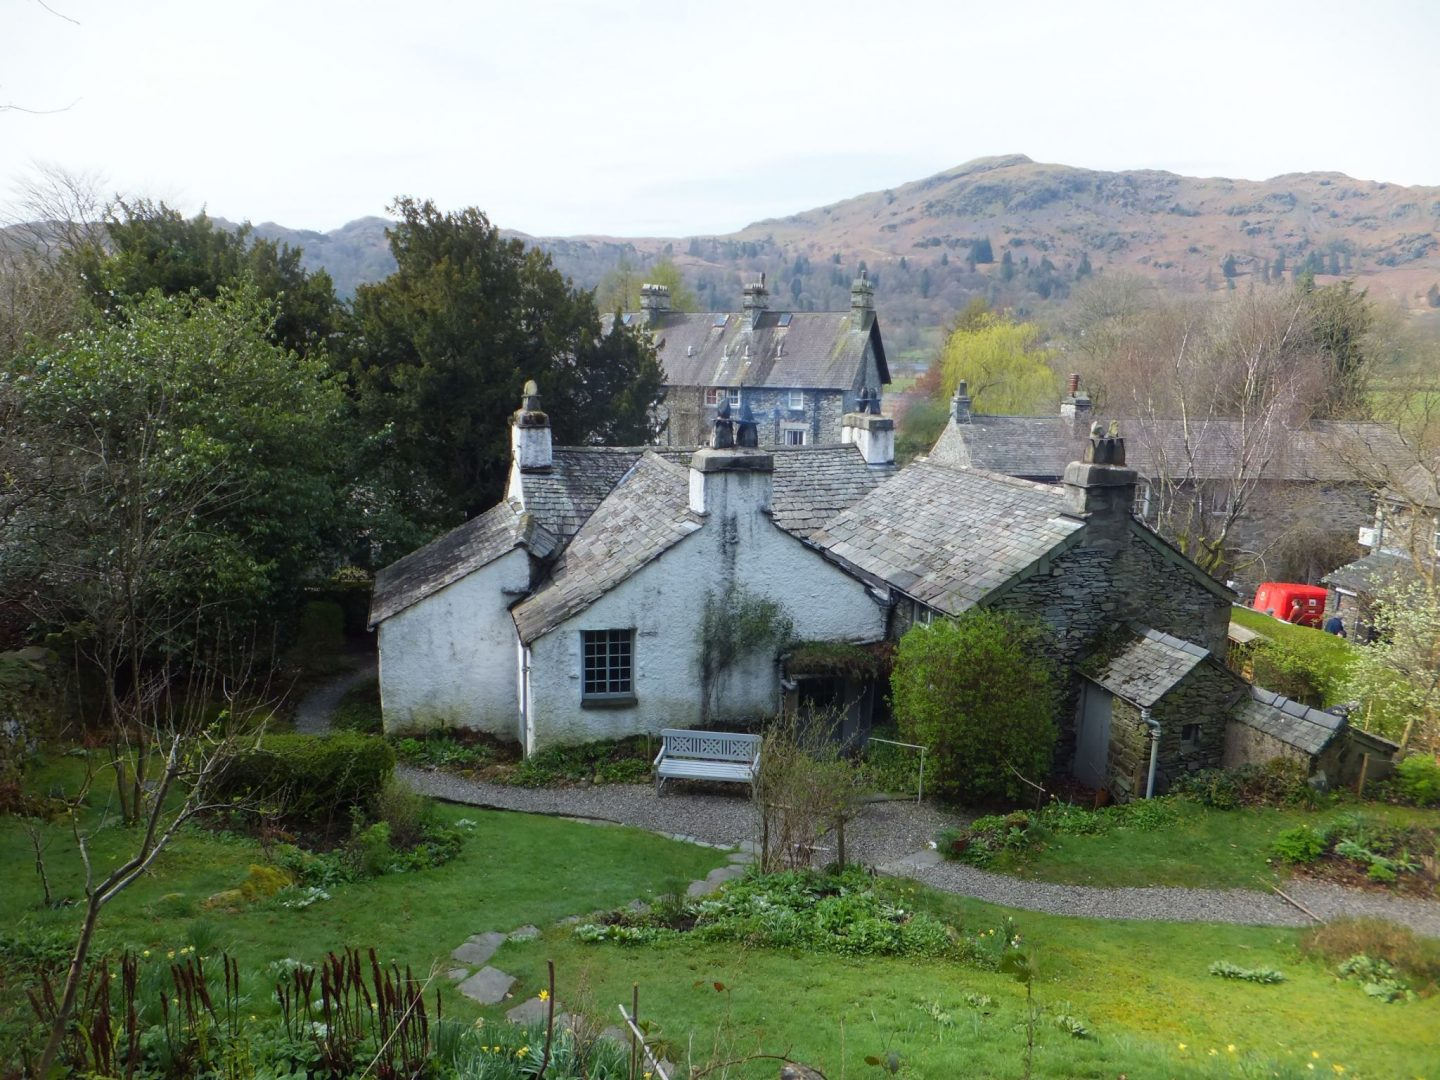 A day in Grasmere